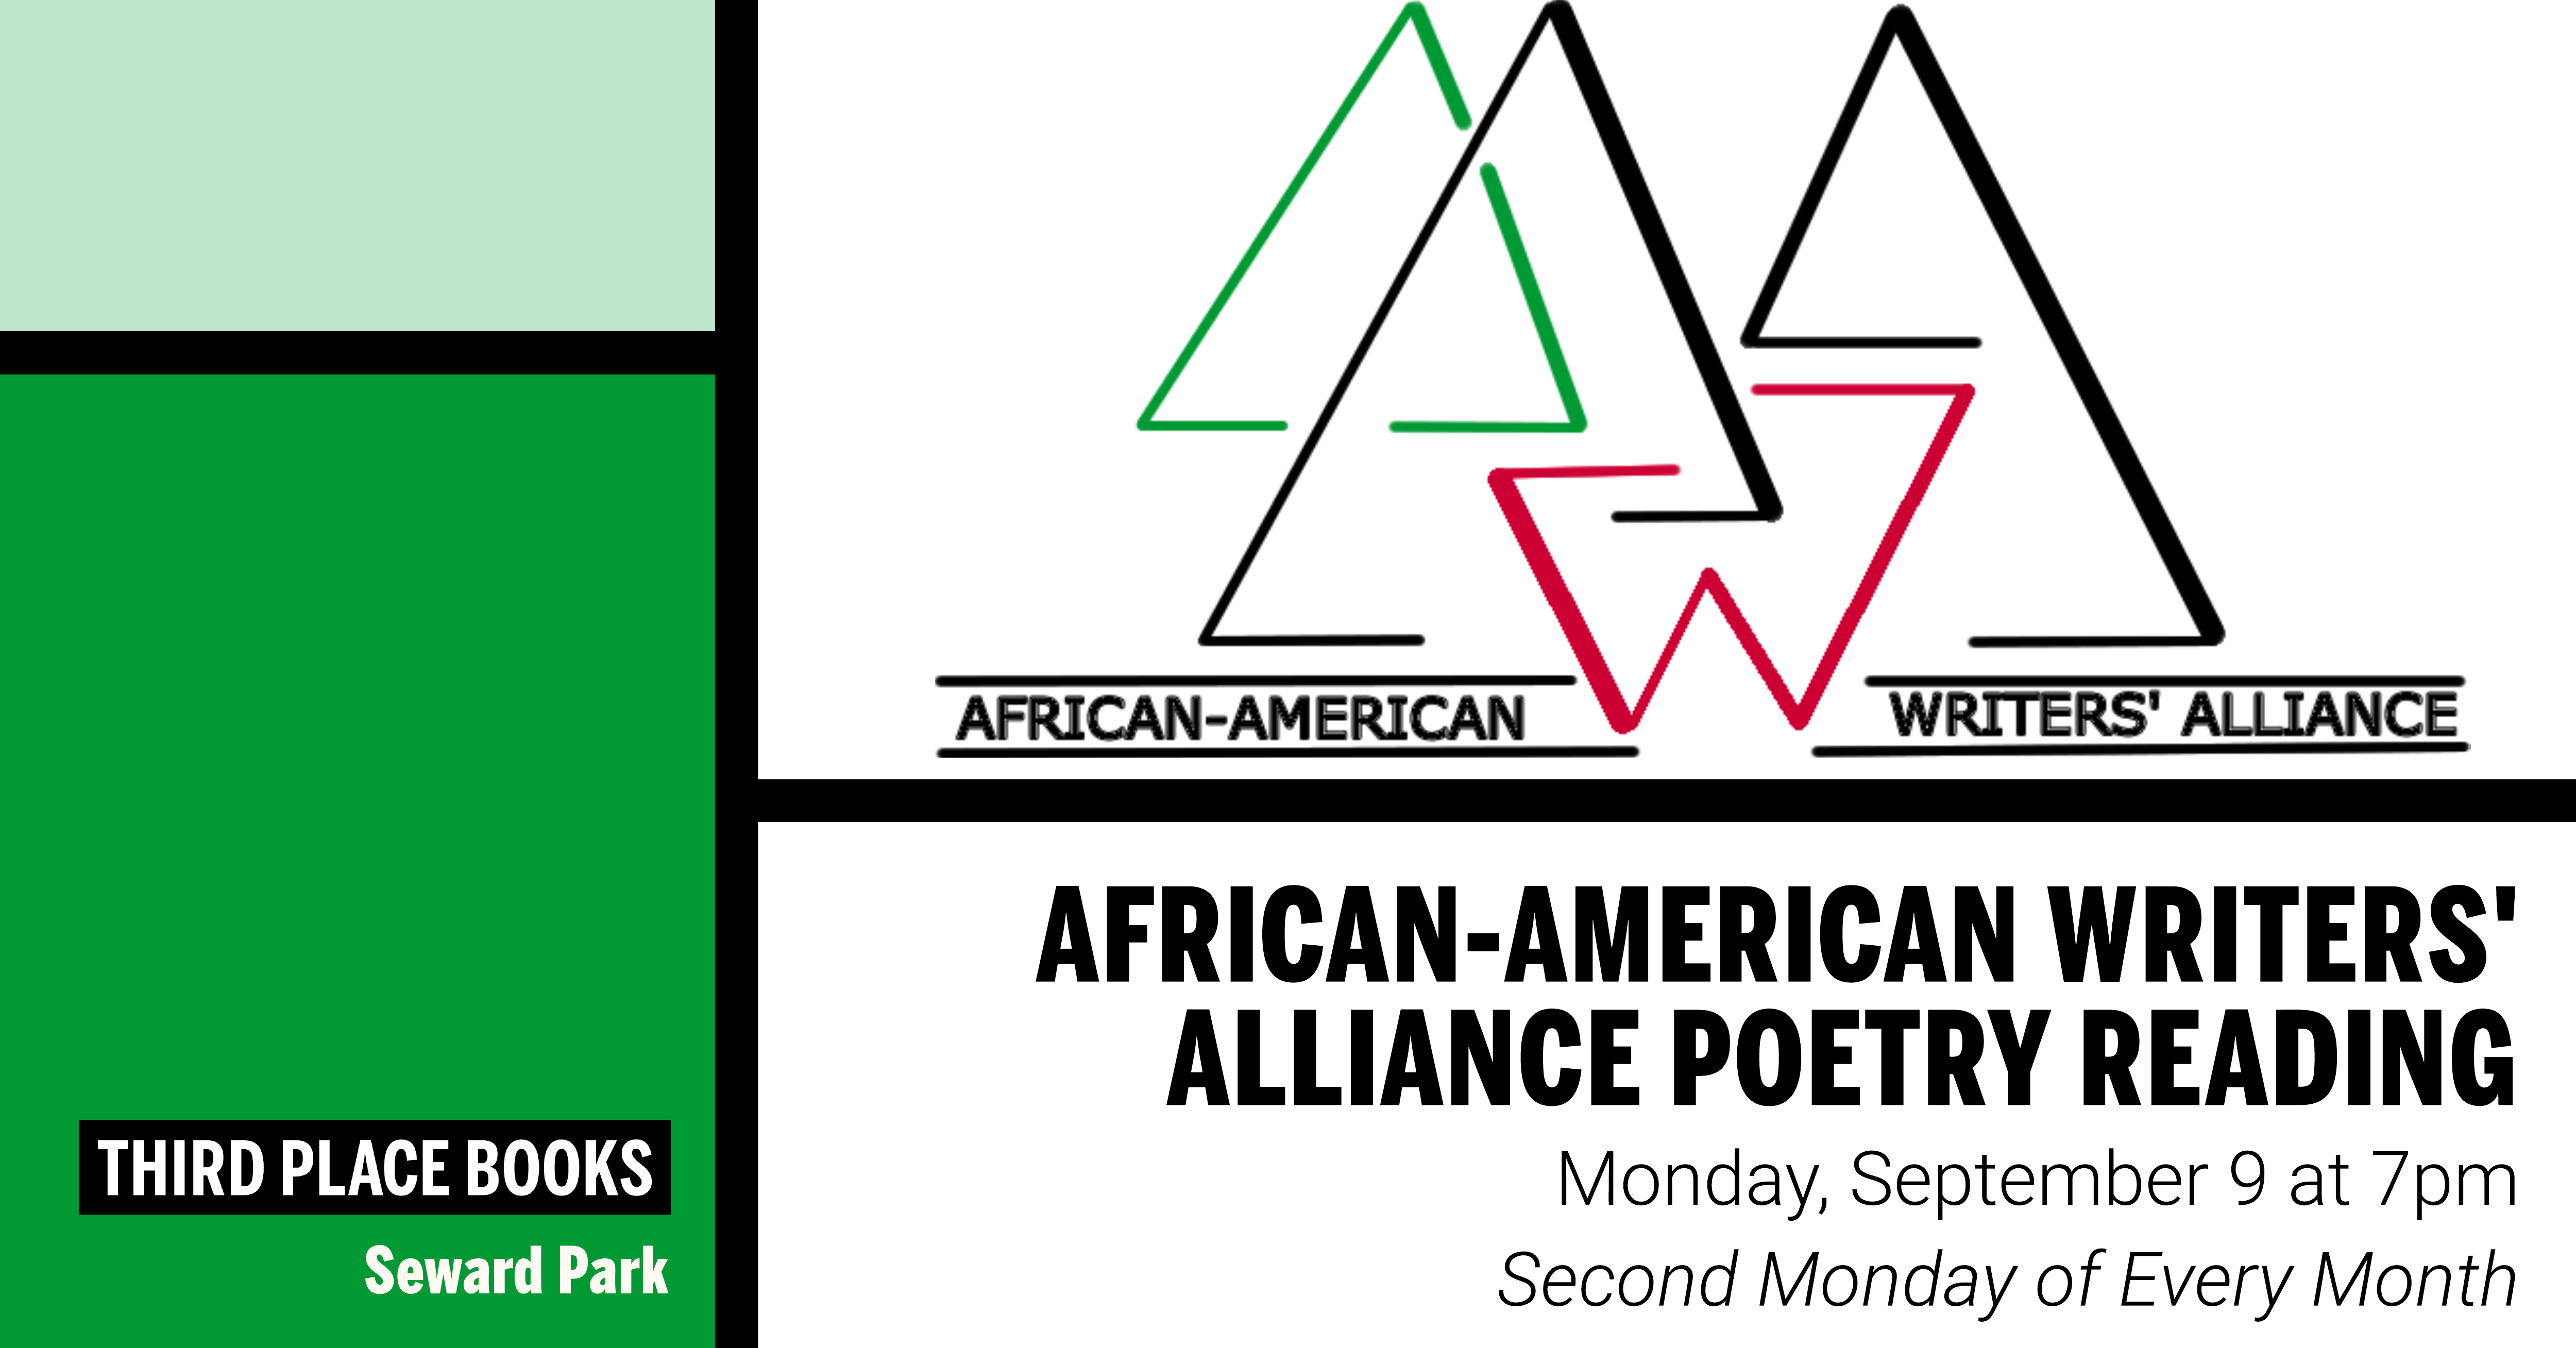 African-American Writers' Alliance Poetry Reading on Monday, September 9 at 7pm